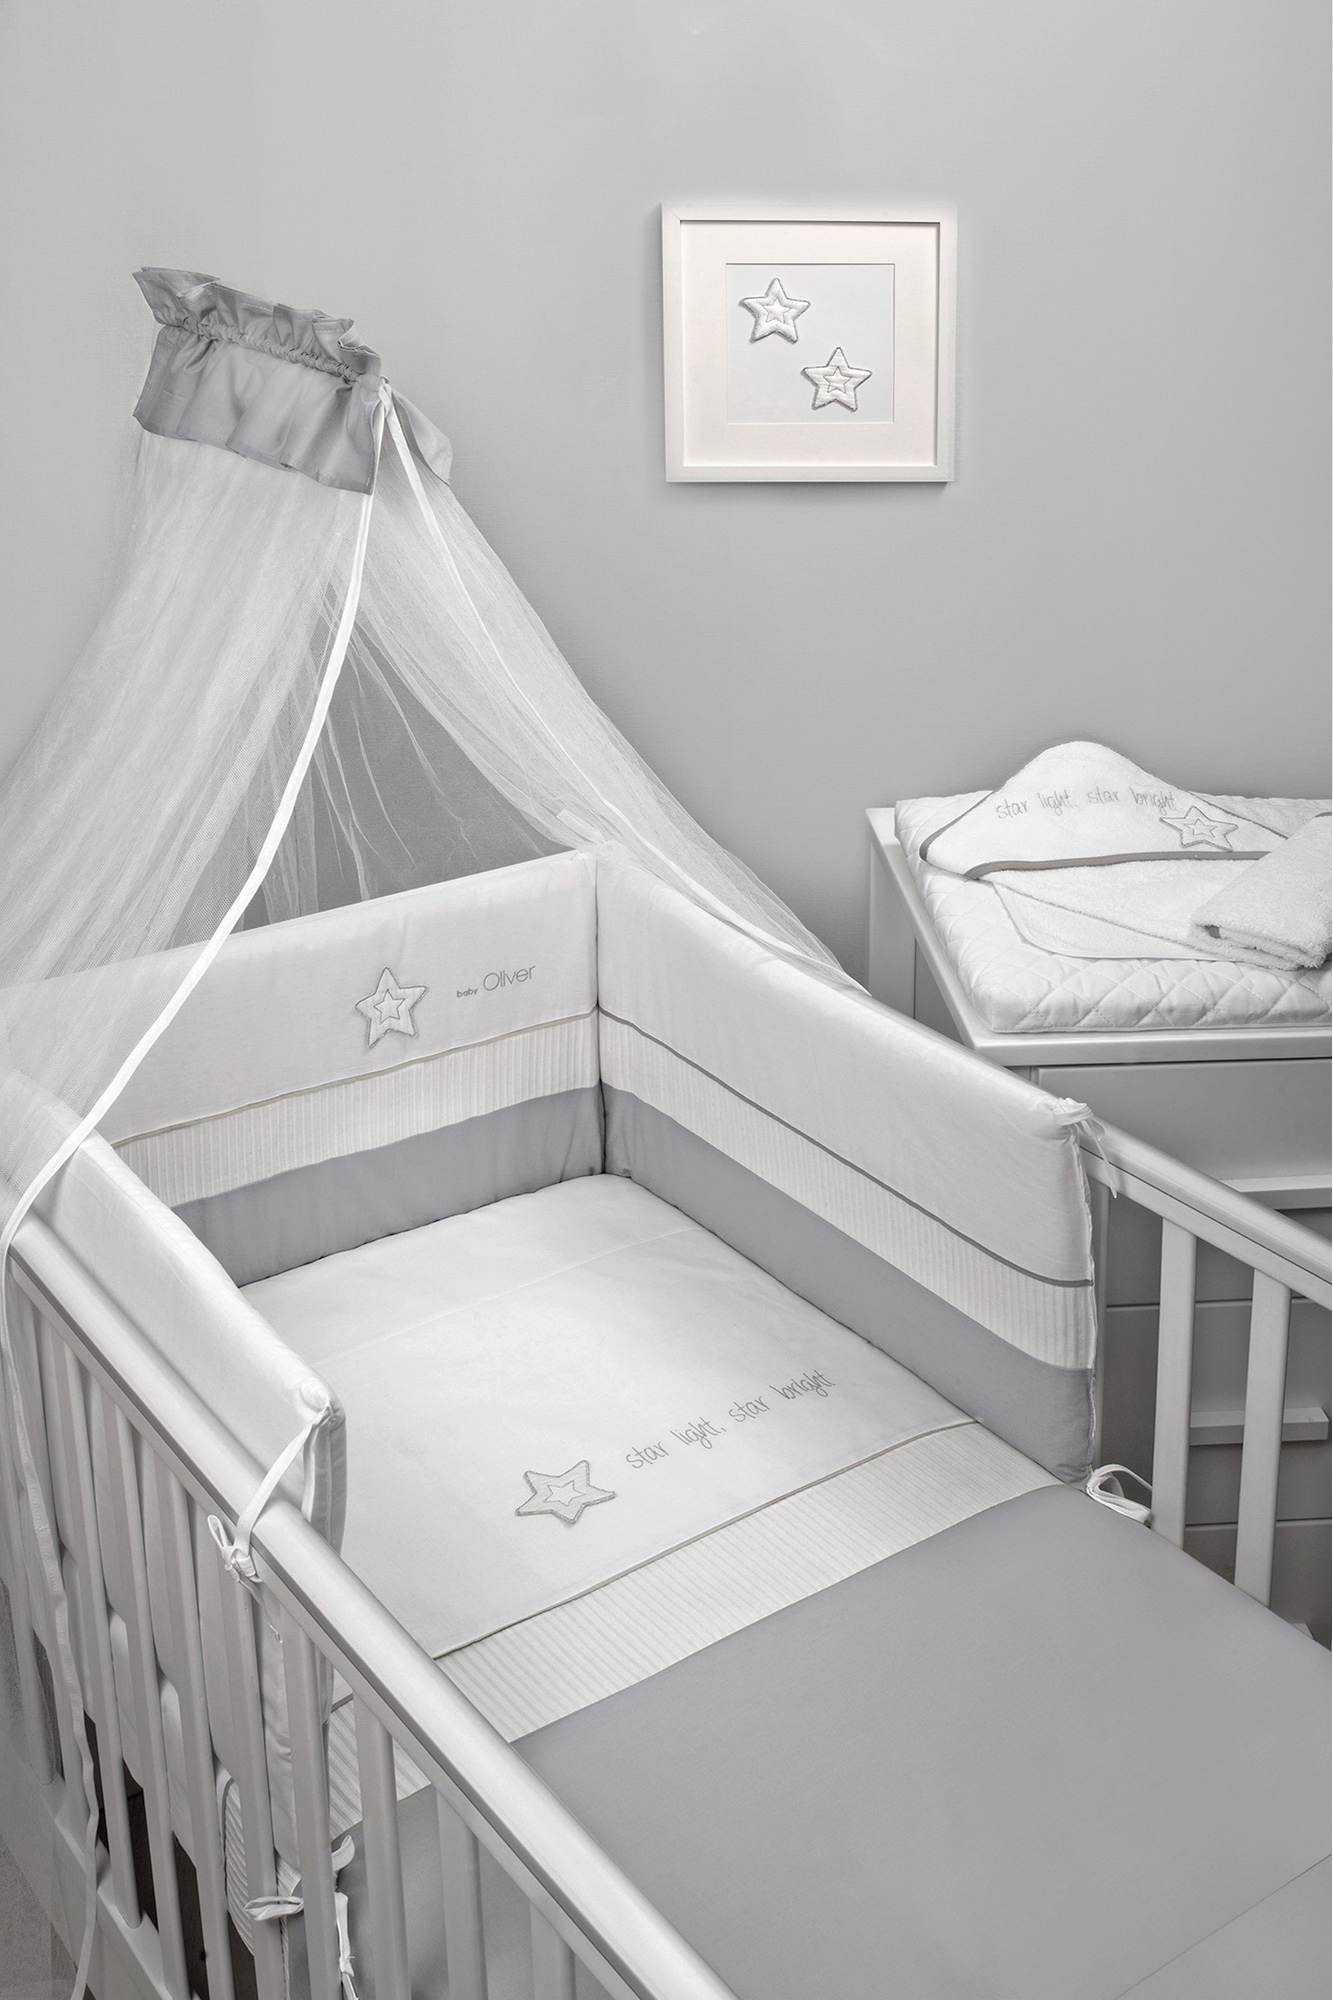 Σετ Προίκας 3 Τεμαχίων Baby Oliver Design 146 Star Light, Star Bright